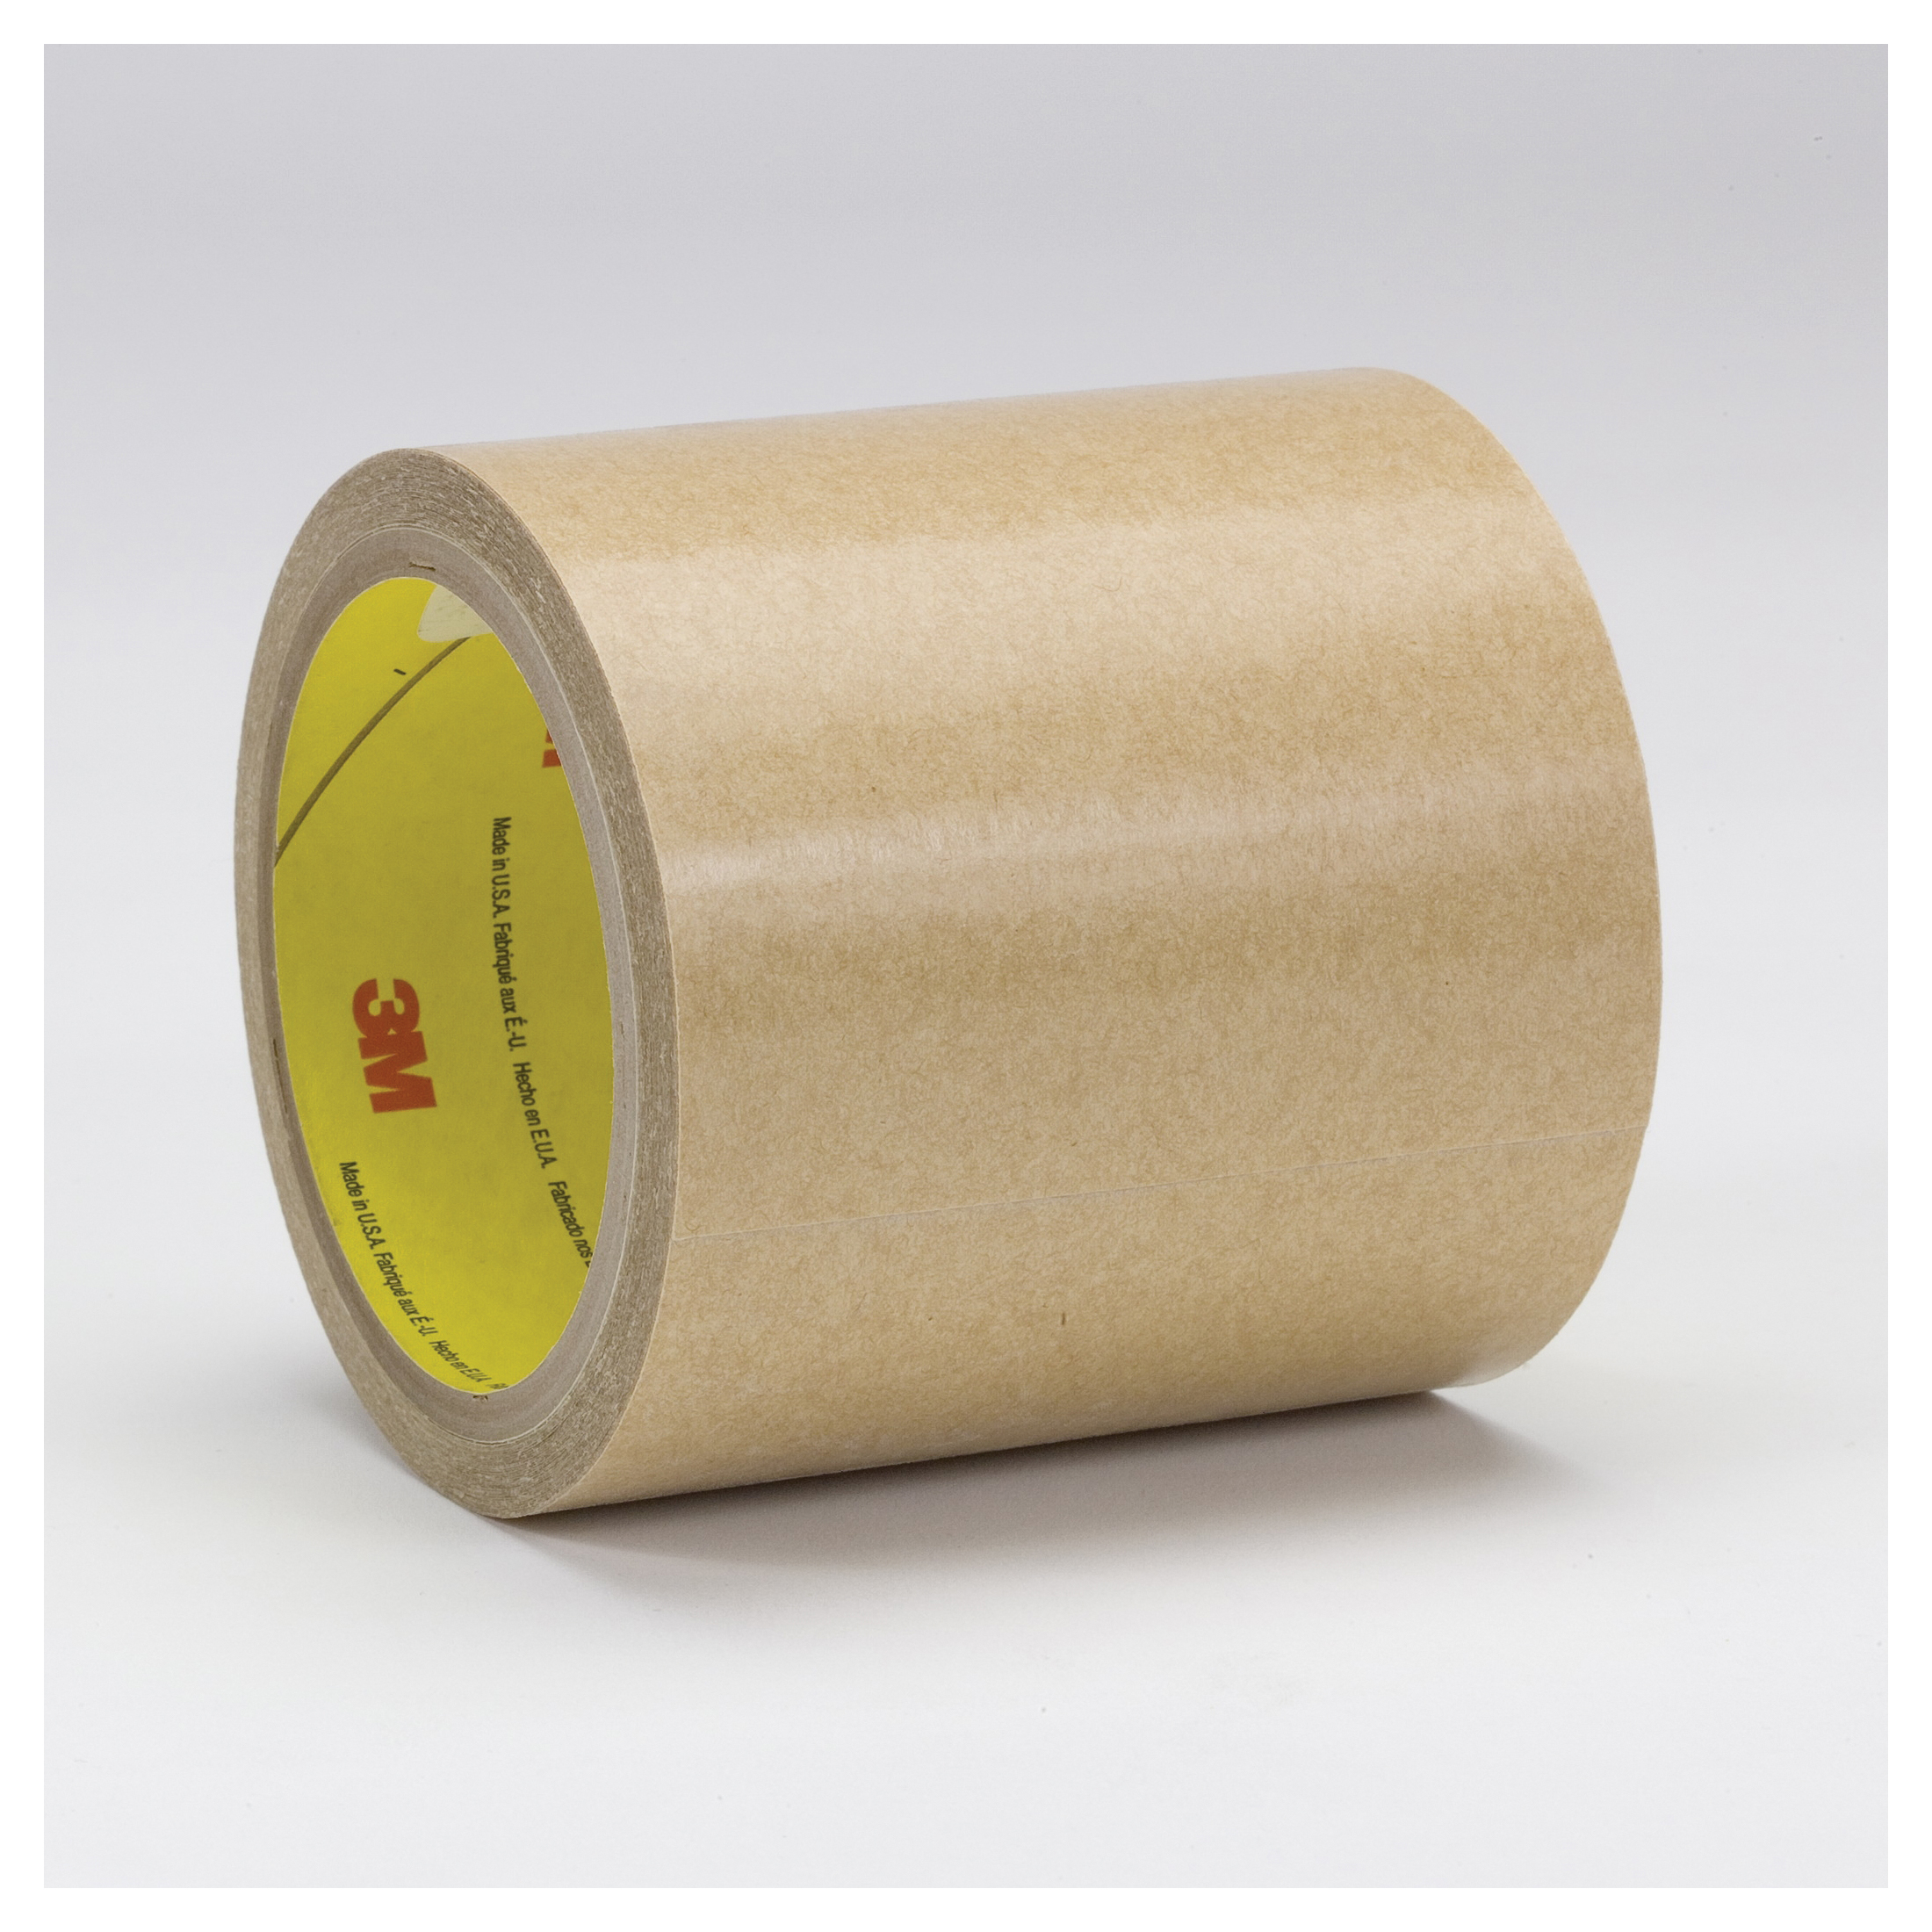 3M™ 021200-24618 General Purpose High Tack Adhesive Transfer Tape, 60 yd L x 1 in W, 8.5 mil THK, 5 mil 300 Acrylic Adhesive, Clear